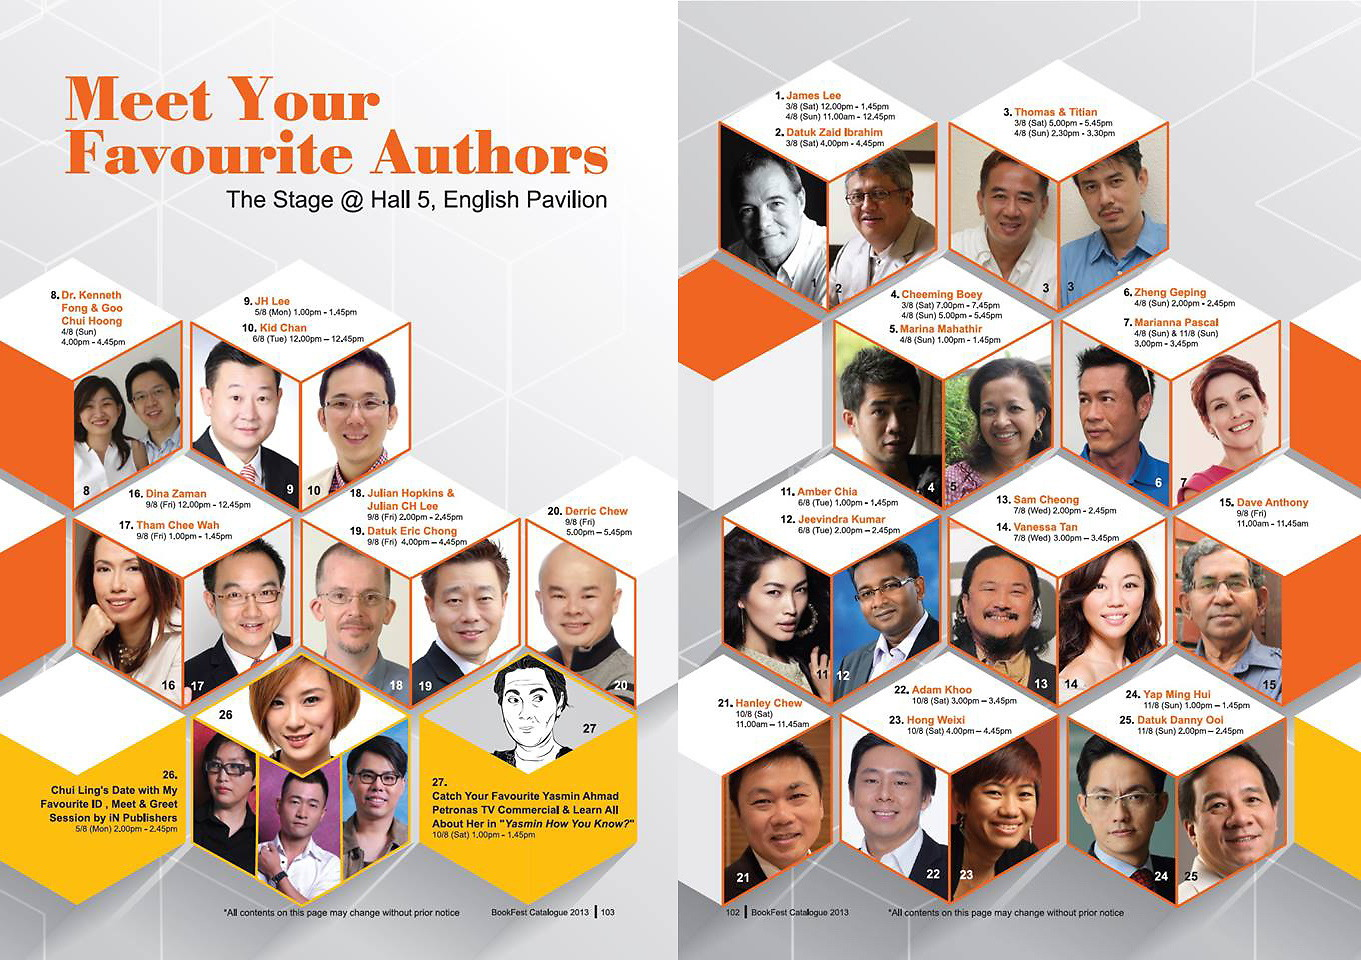 BookFest Catalogue 2013: Meet Your Favourite Authors